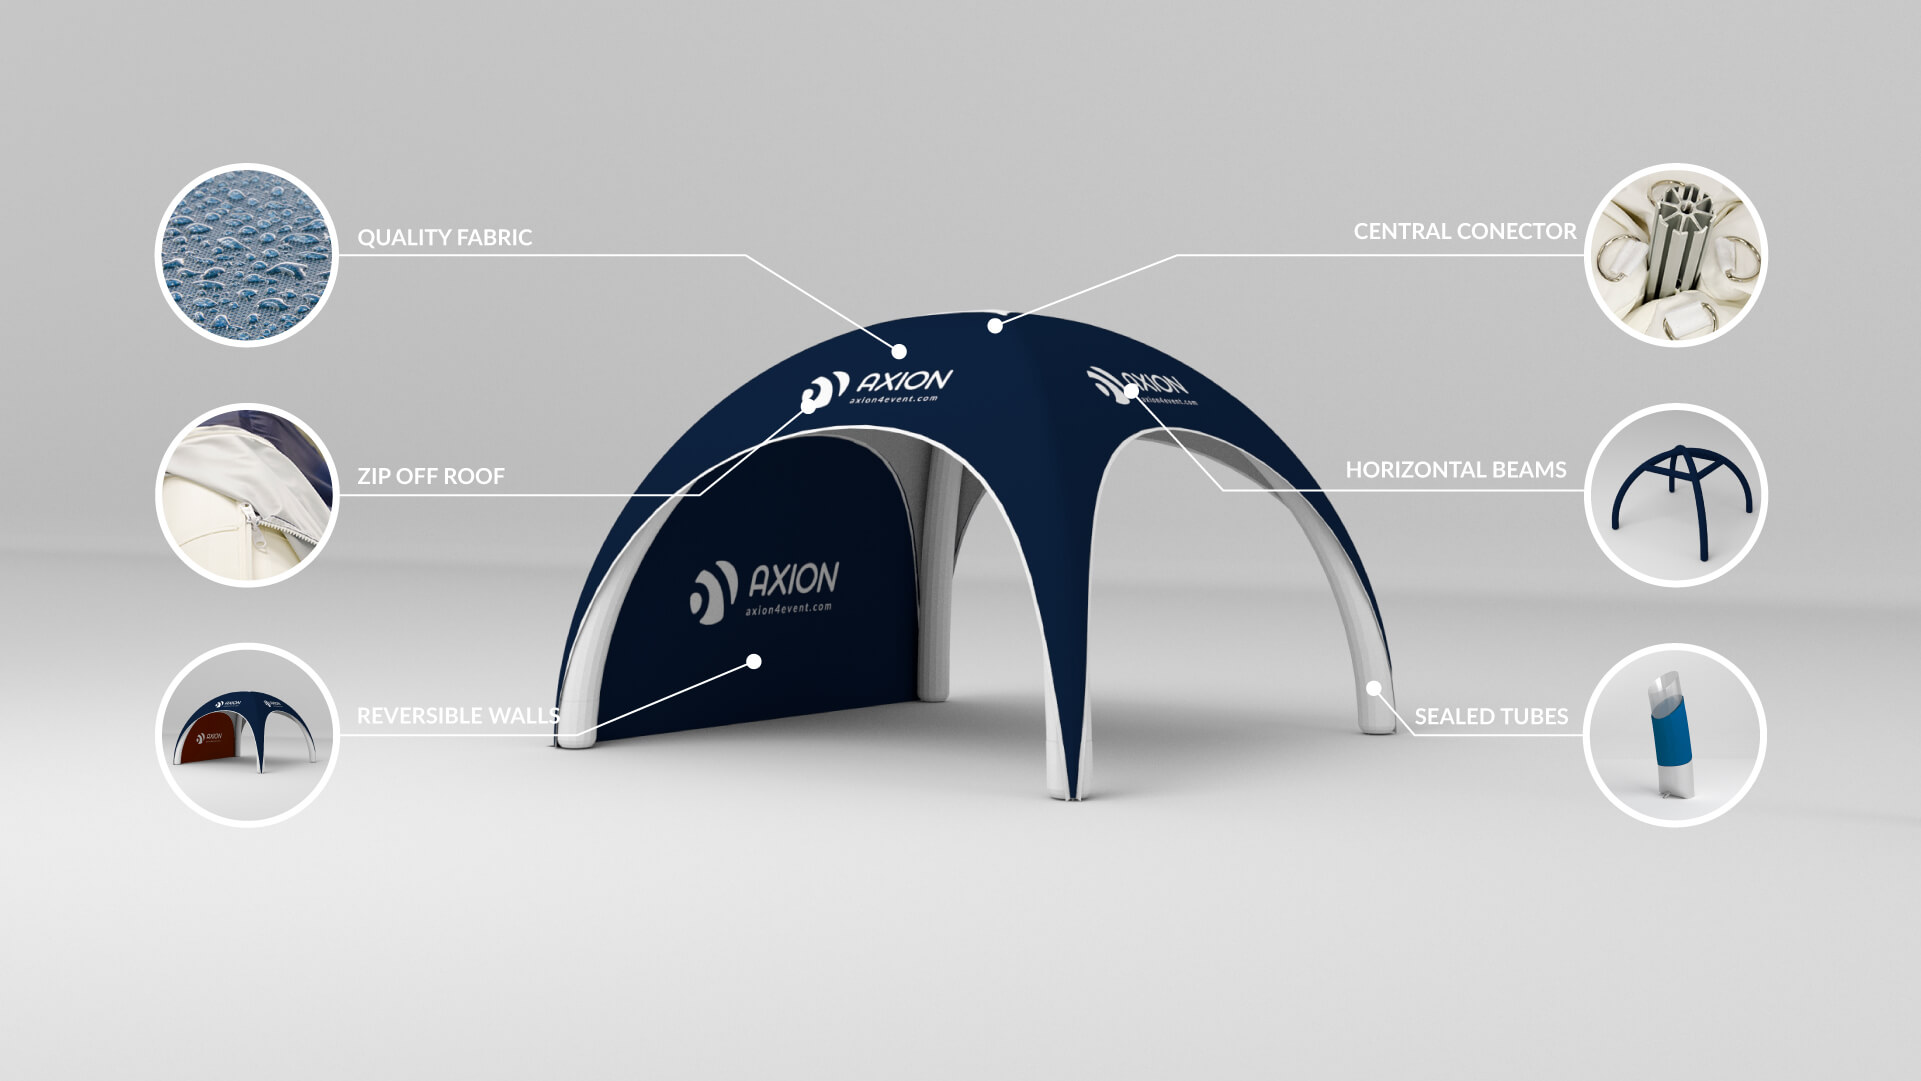 Axion Square Inflatable Event Tent from 4m x 4m to 7m x 7m